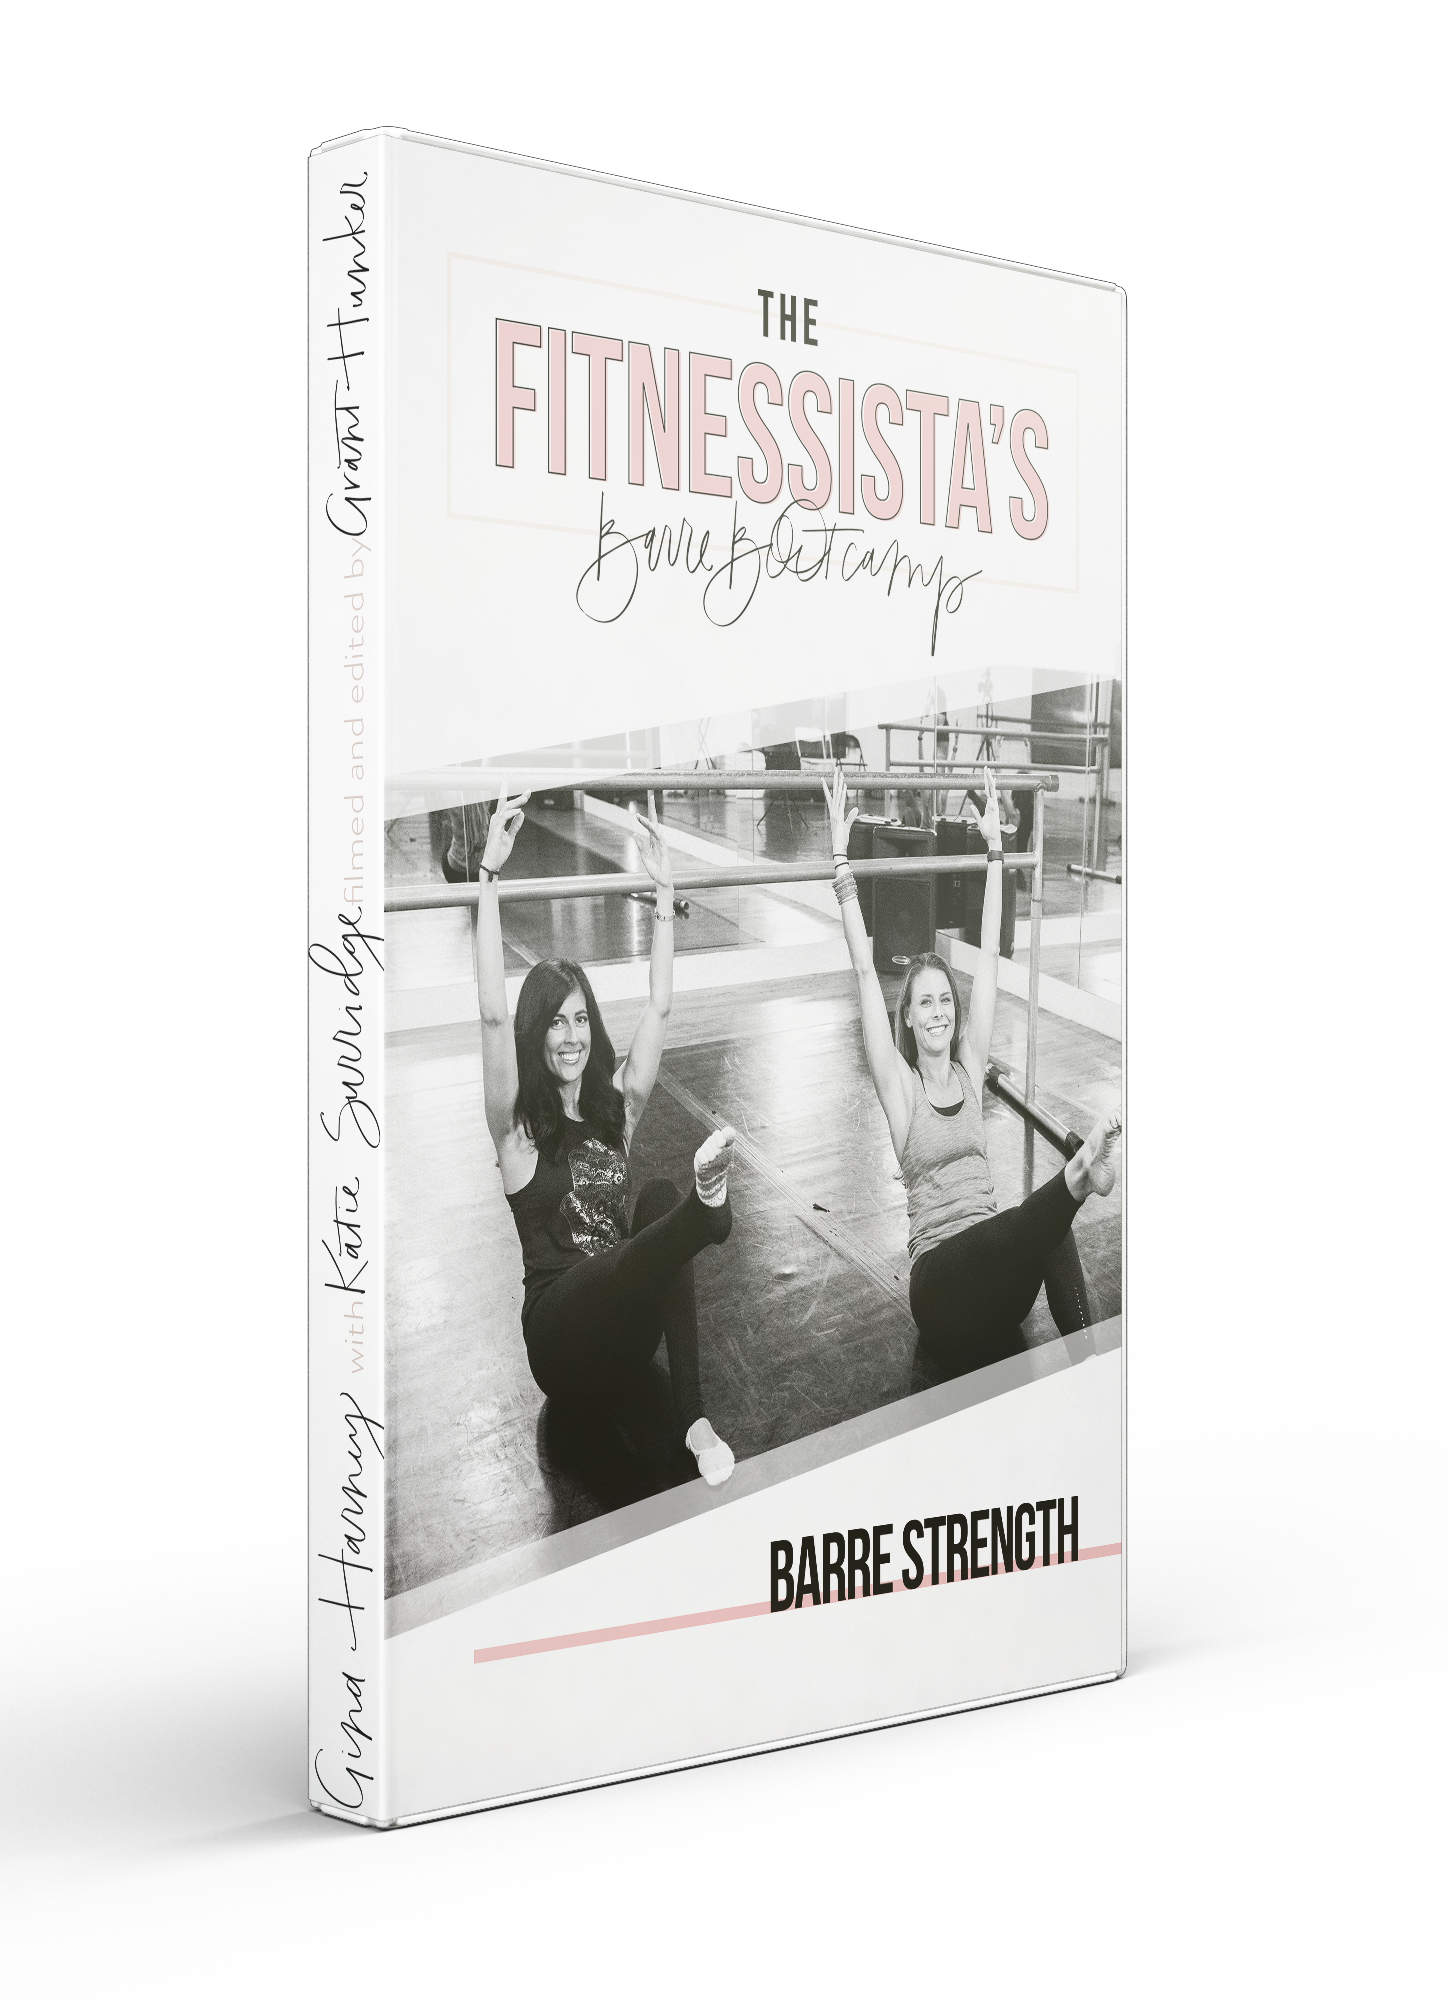 The Fitnessista's Barre Strength Workout